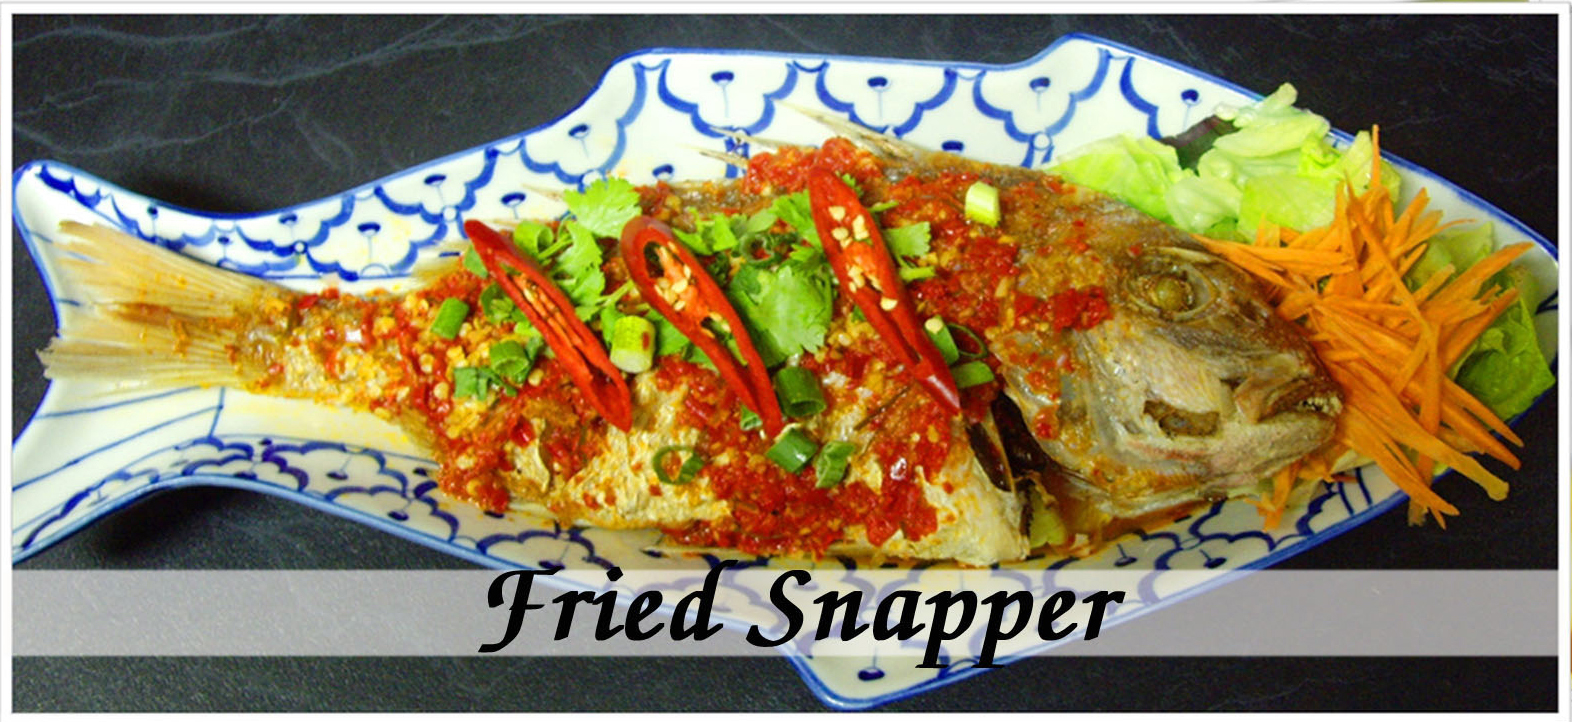 Fried Snapper (Pla Rard Prig)